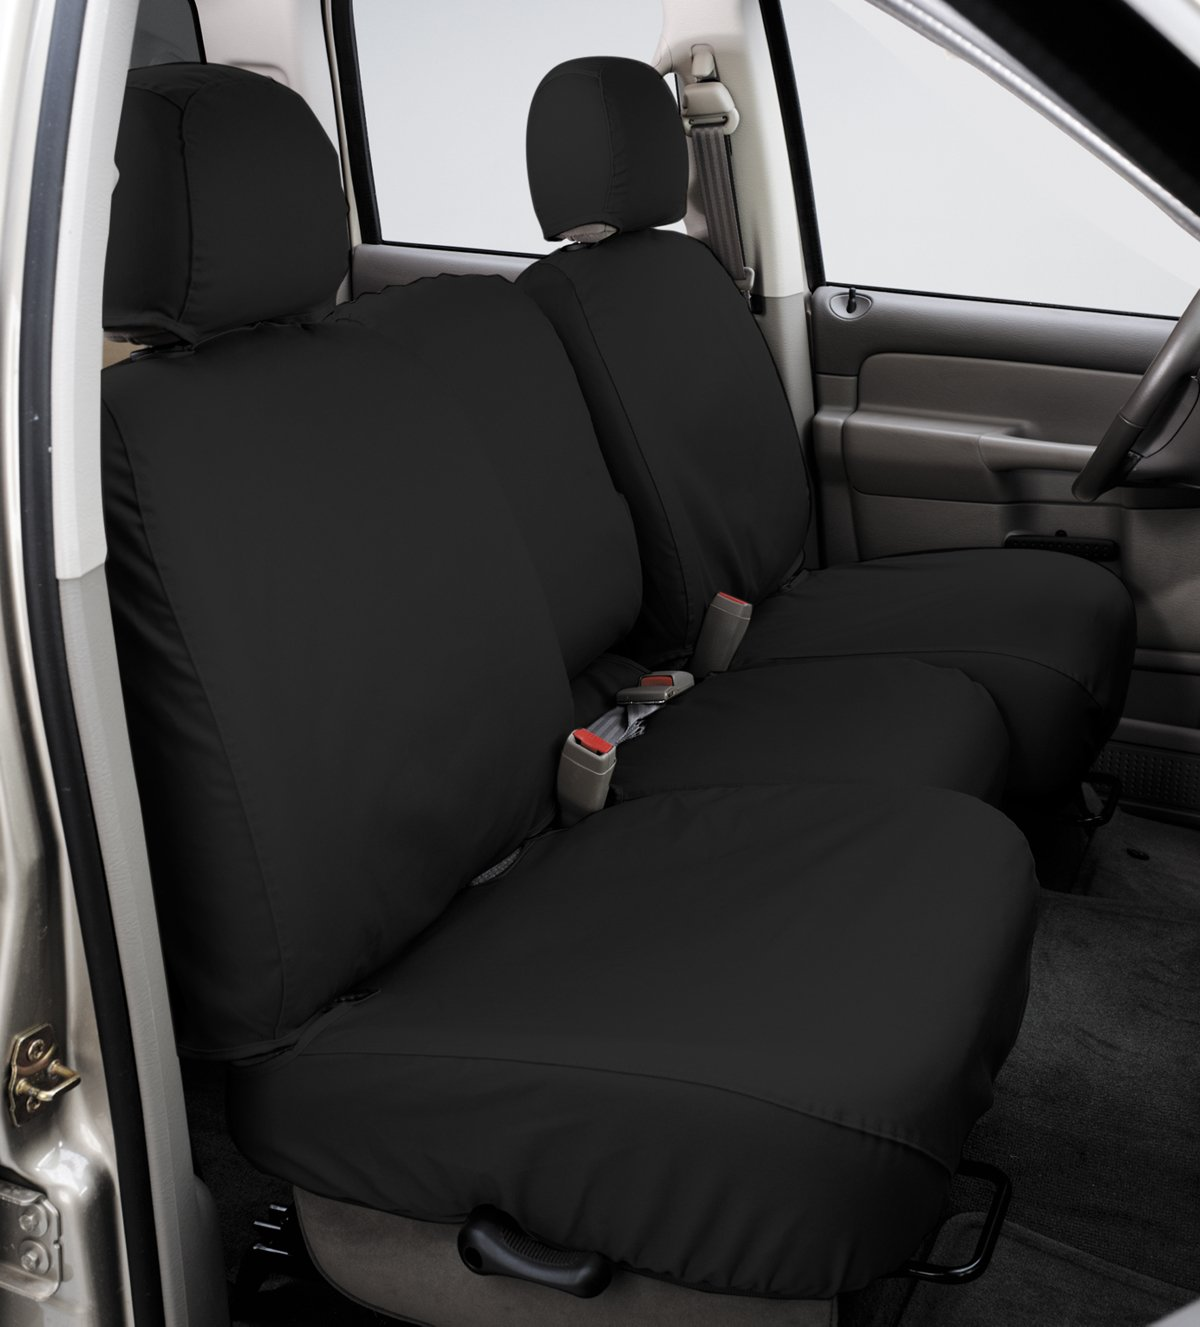 Polycotton Charcoal Covercraft SeatSaver Second Row Custom Fit Seat Cover for Select Subaru Outback Models SS7421PCCH